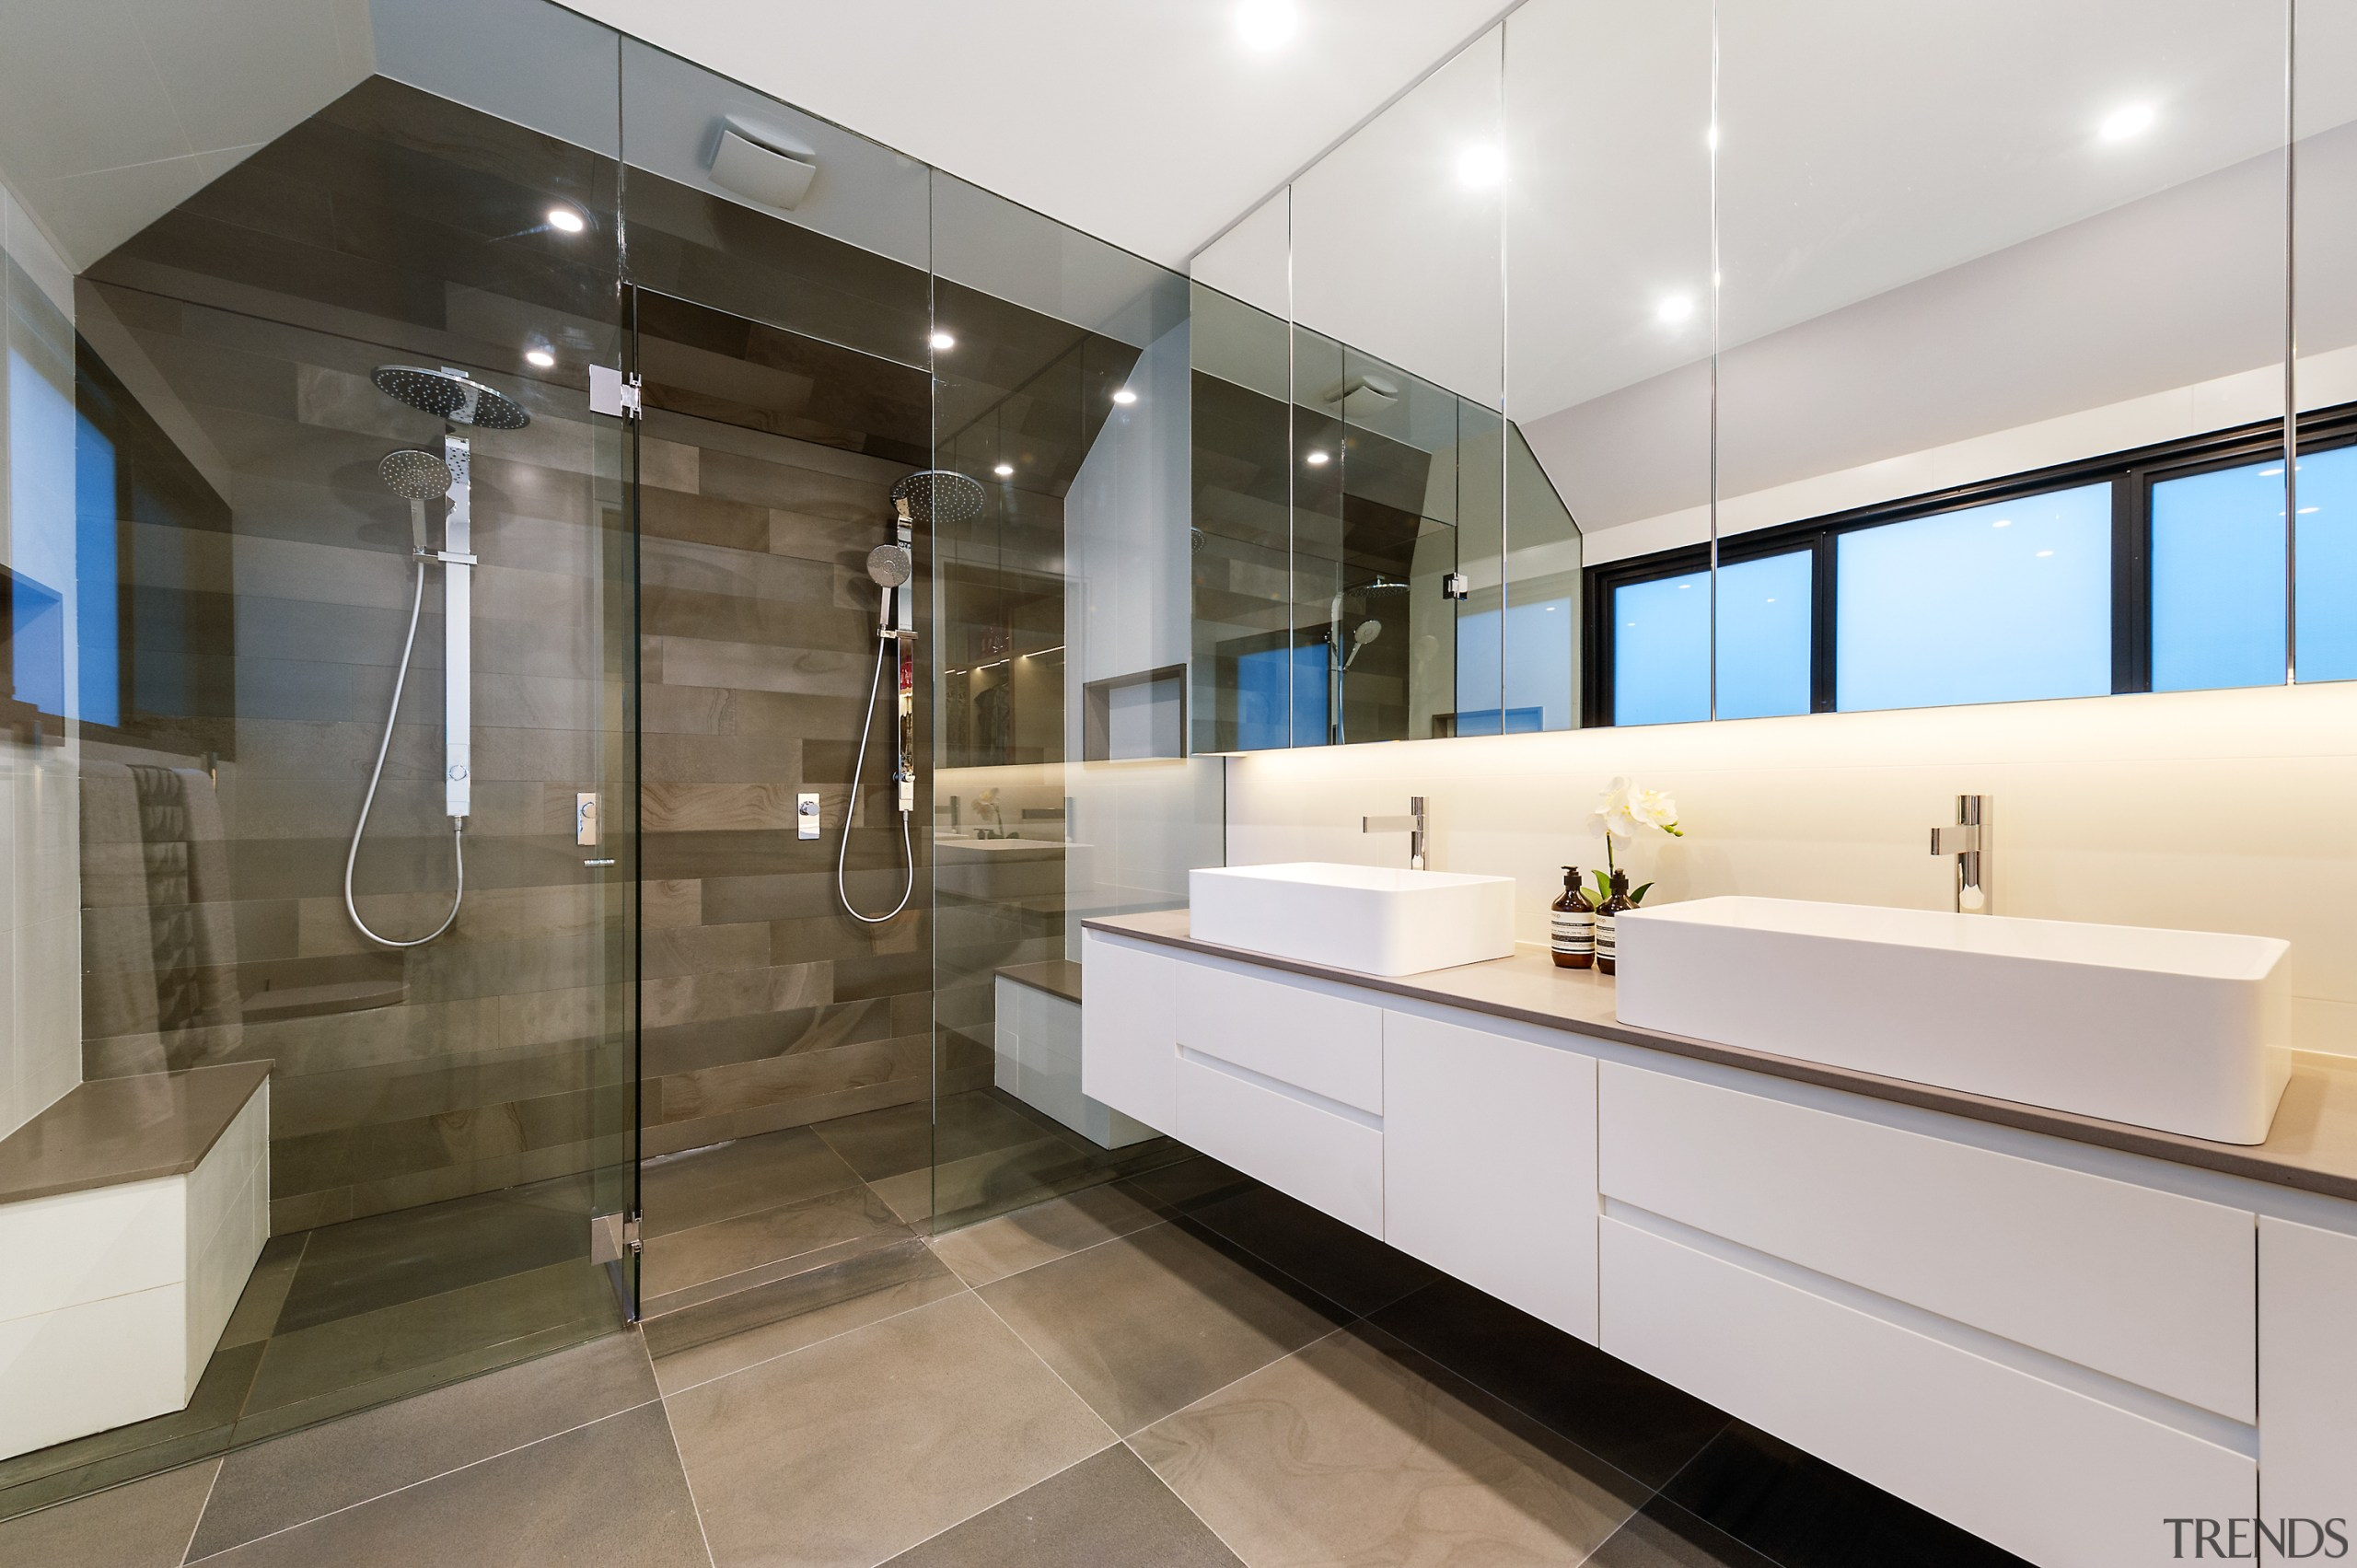 One result of the renovation was a gleaming architecture, bathroom, building, cabinetry, ceiling, design, floor, flooring, furniture, glass, home, house, interior design, lighting, material property, property, real estate, room, tile, wall, white